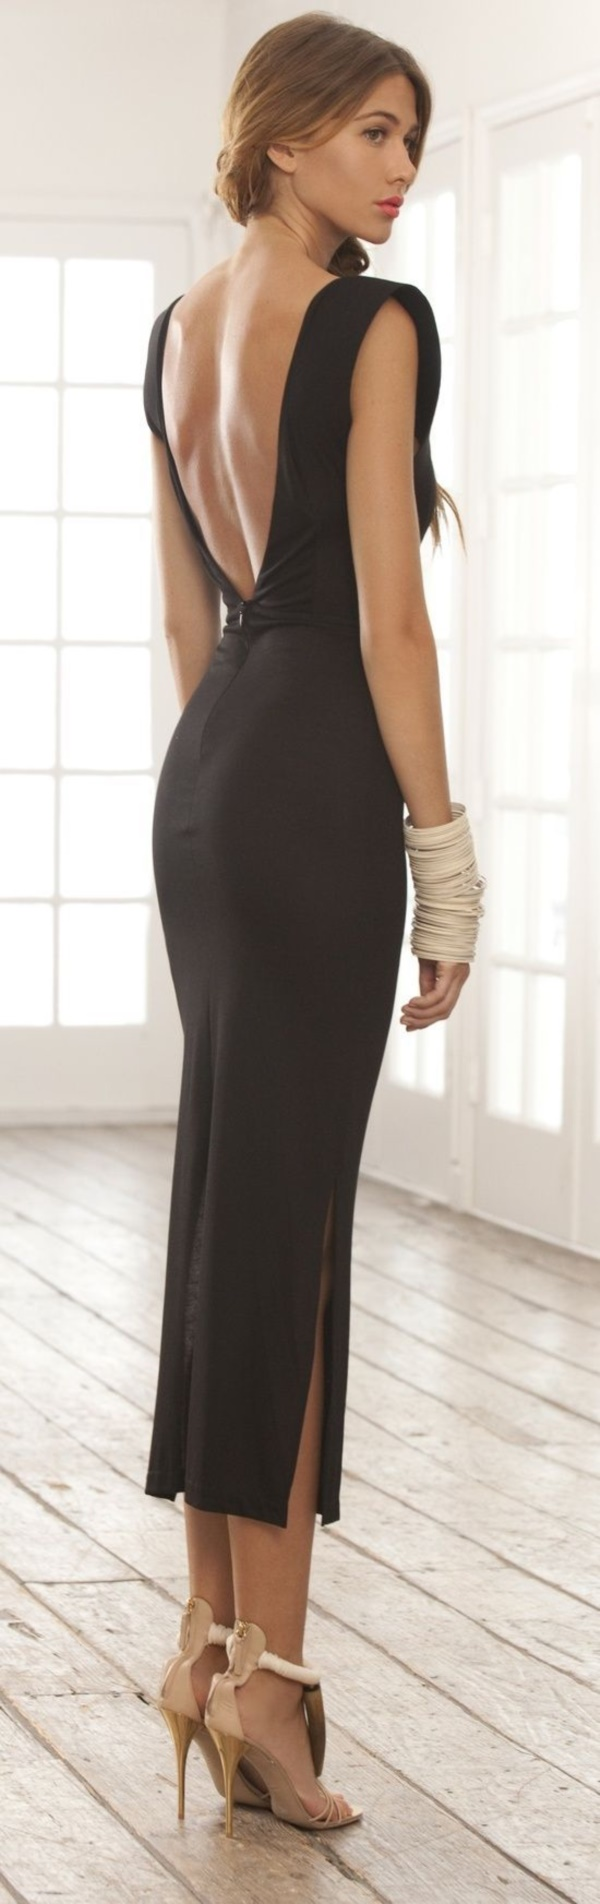 sexy backless dresses0011